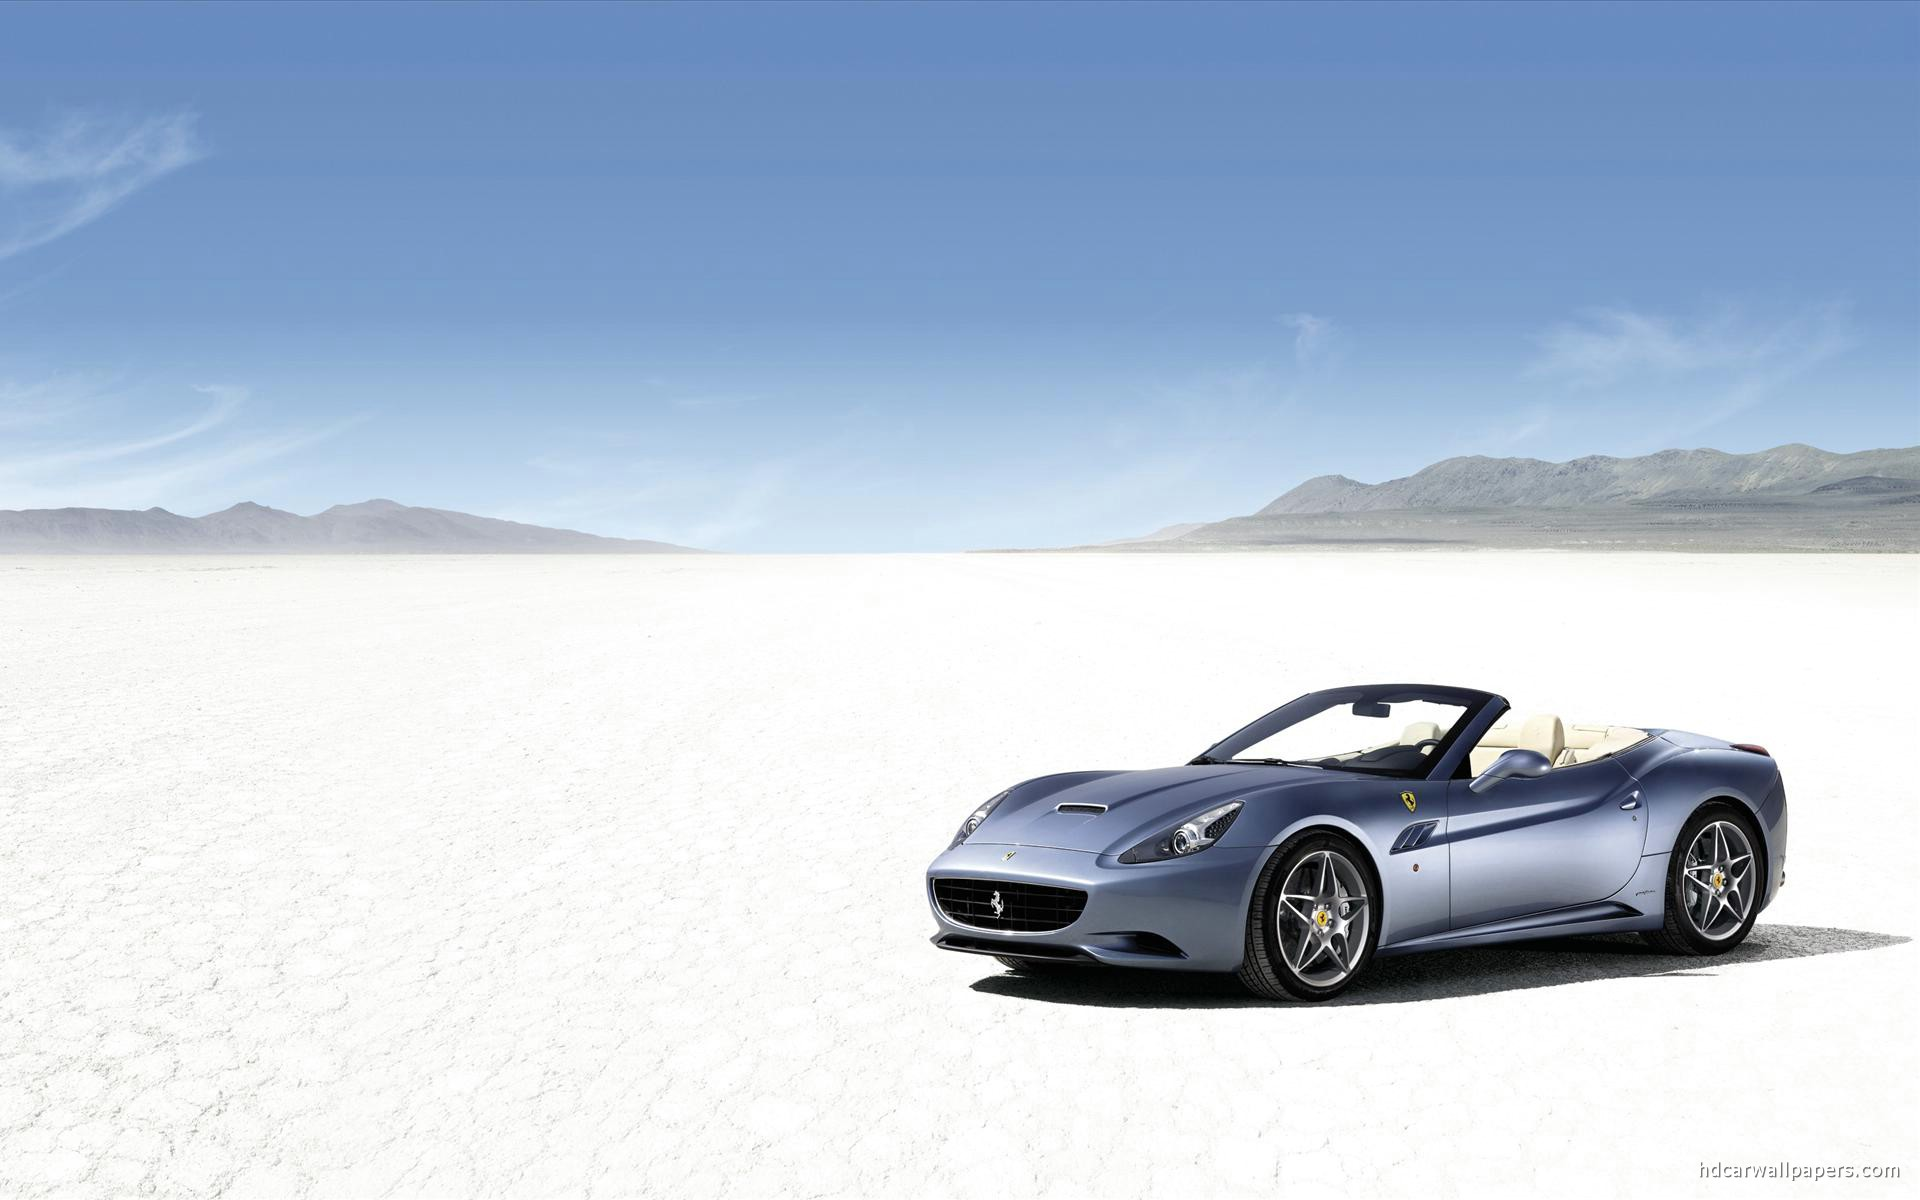 Ferrari California Wallpaper Free Download